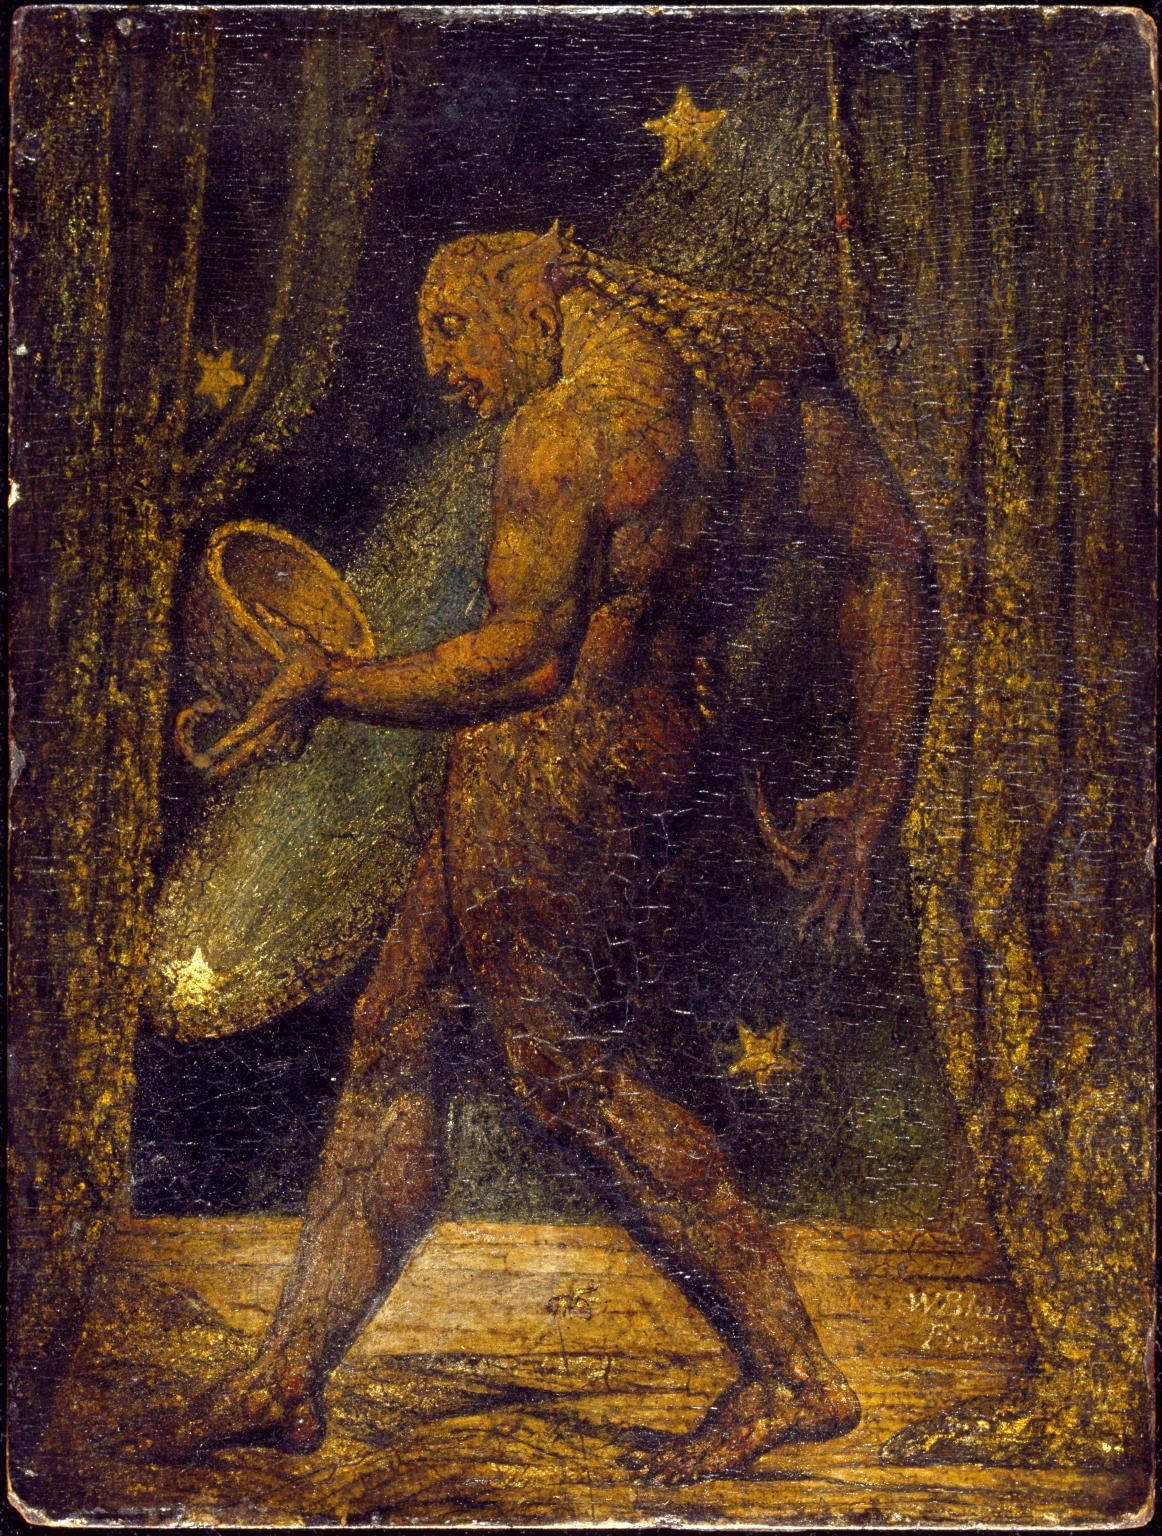 William Blake,  The ghost of flea